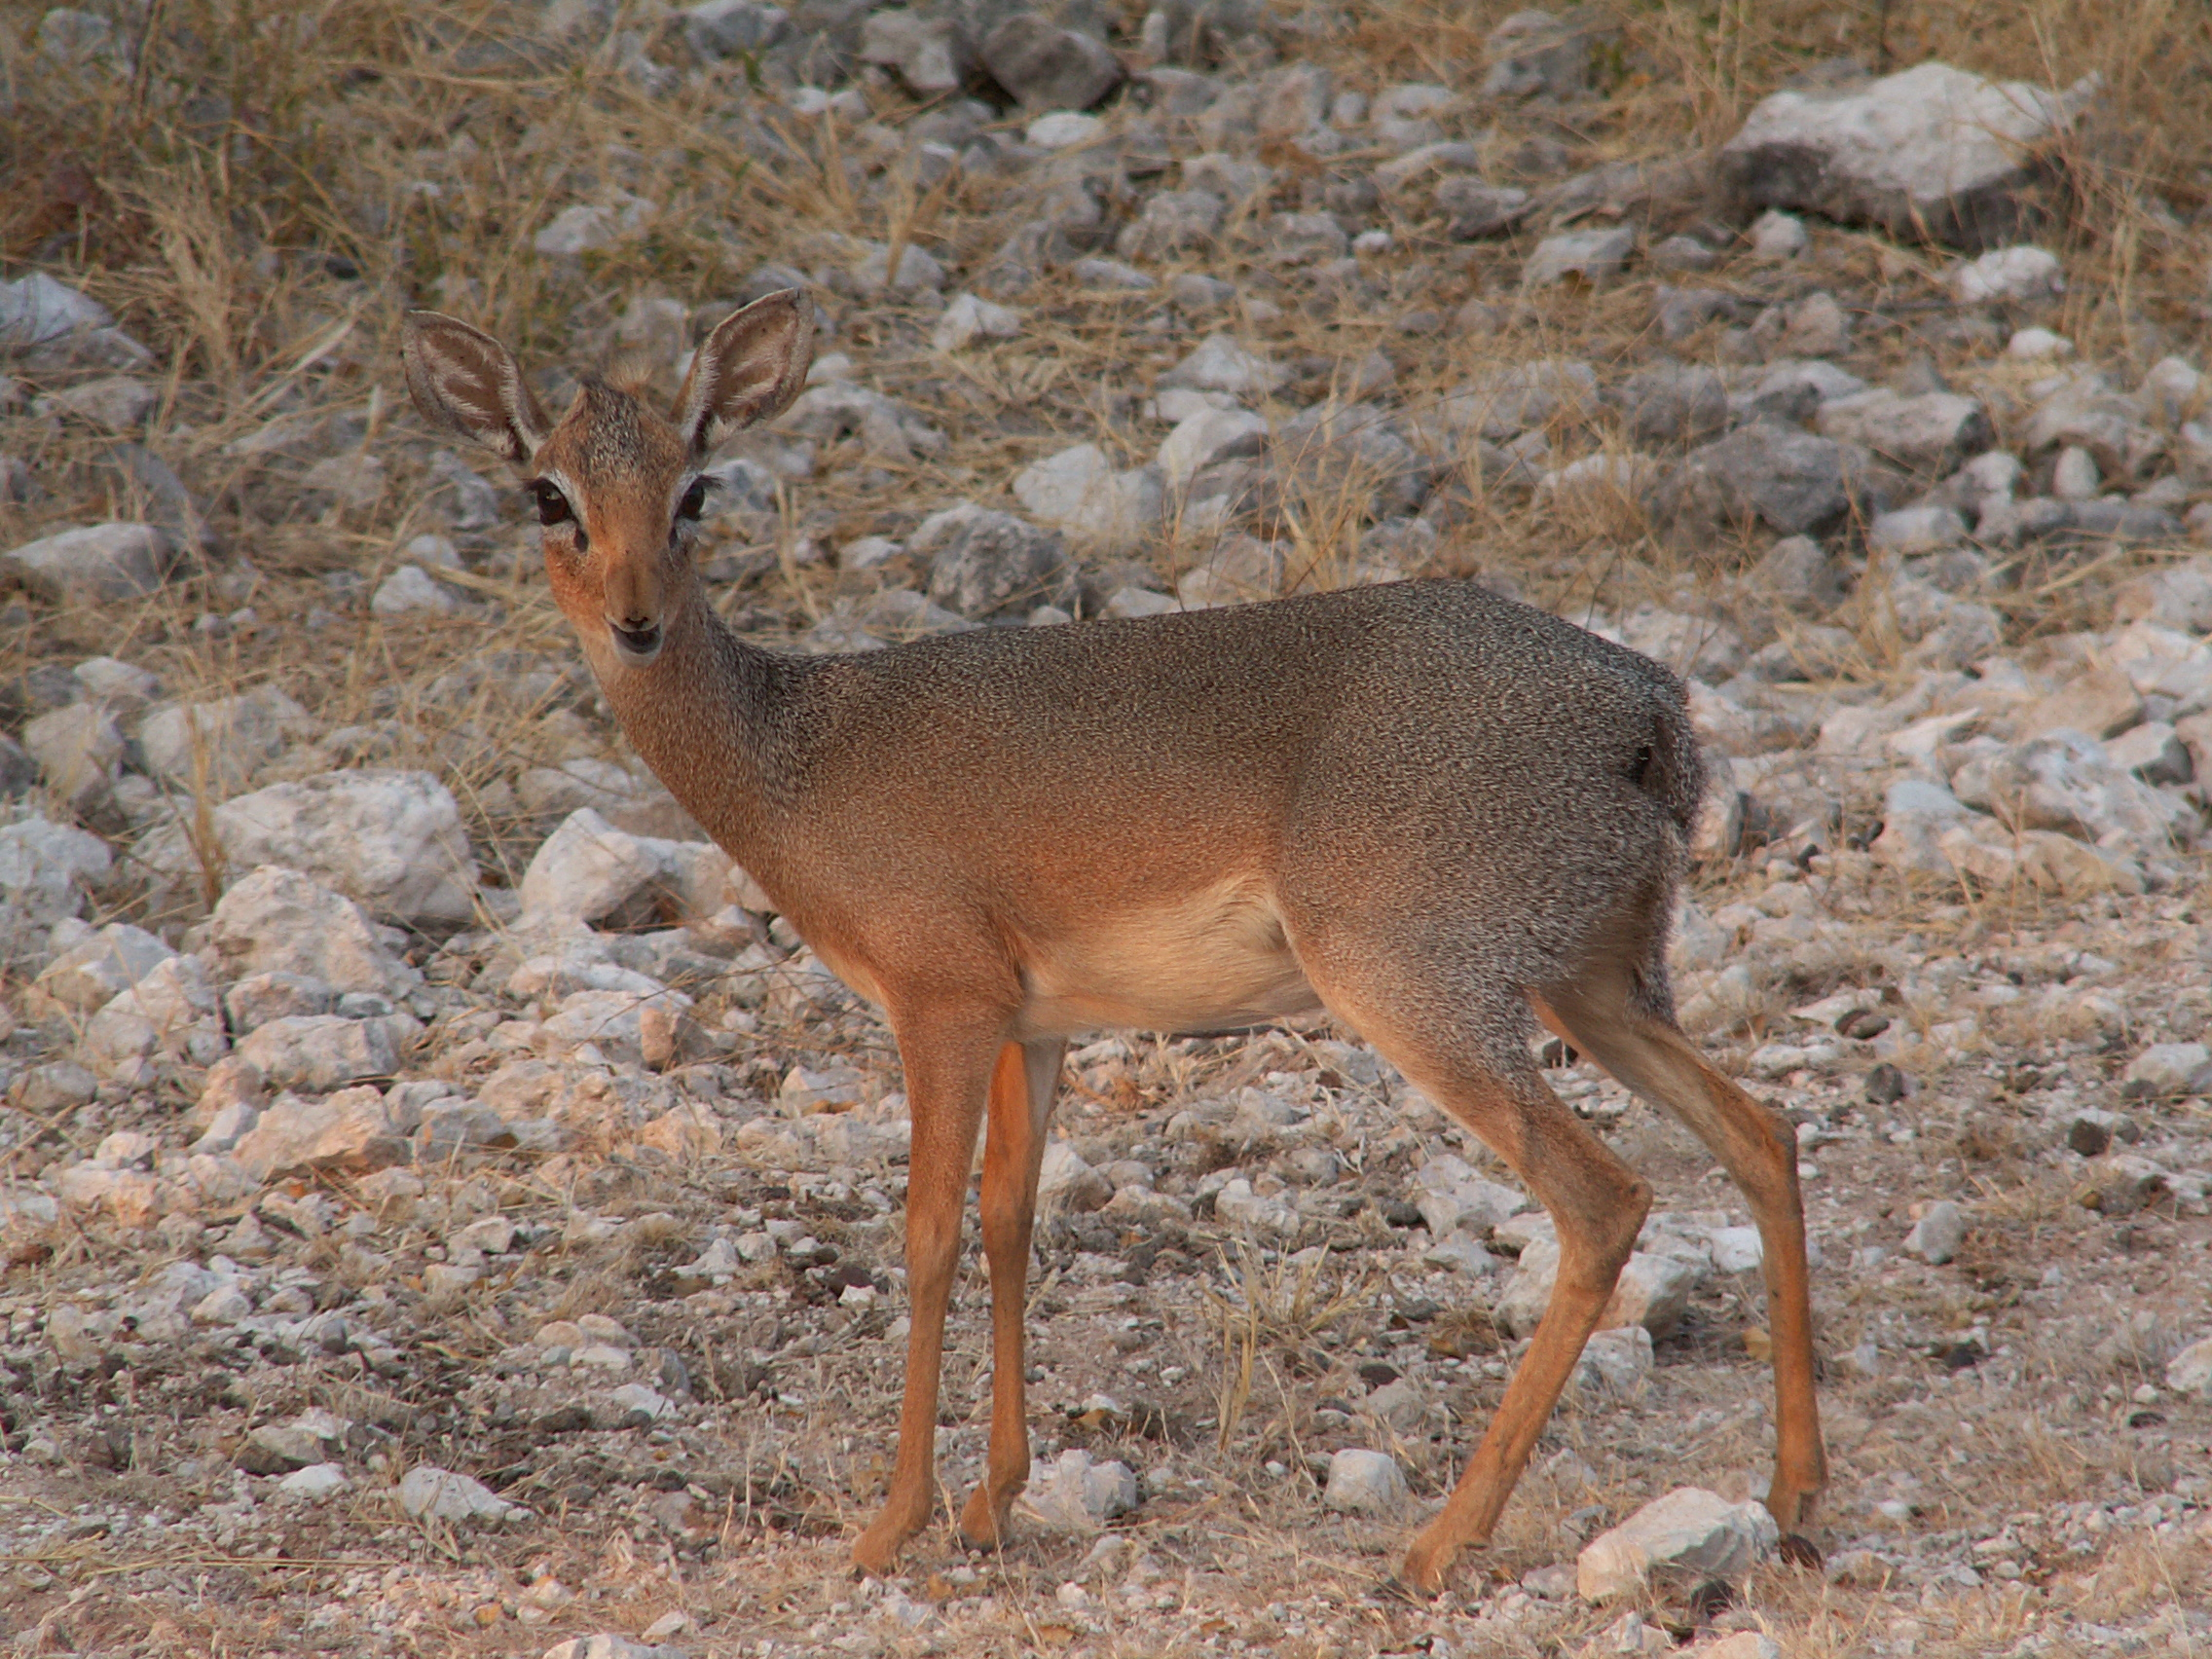 https://upload.wikimedia.org/wikipedia/commons/7/75/Damara_Dik-Dik.JPG